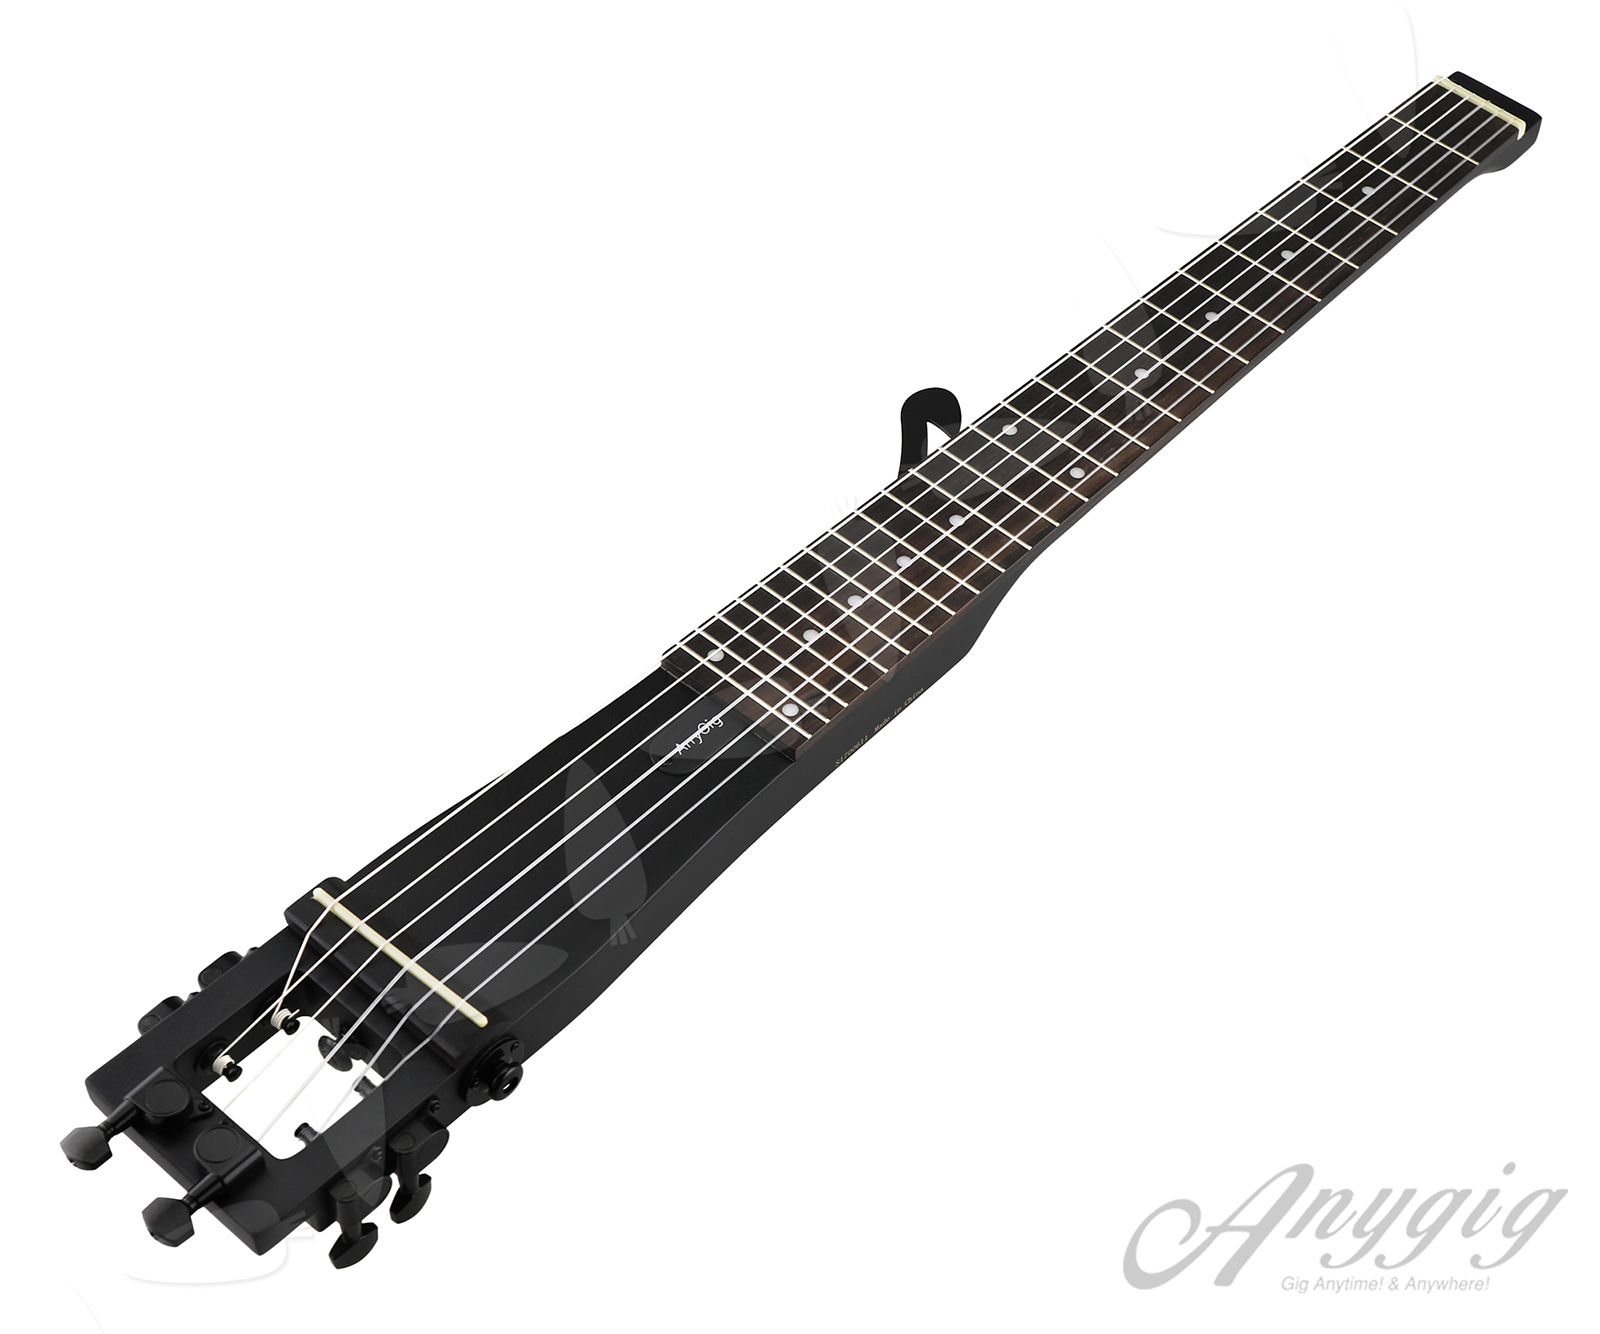 anygig agn nylon string full scale length travel guitar classical type black 735548263630 ebay. Black Bedroom Furniture Sets. Home Design Ideas